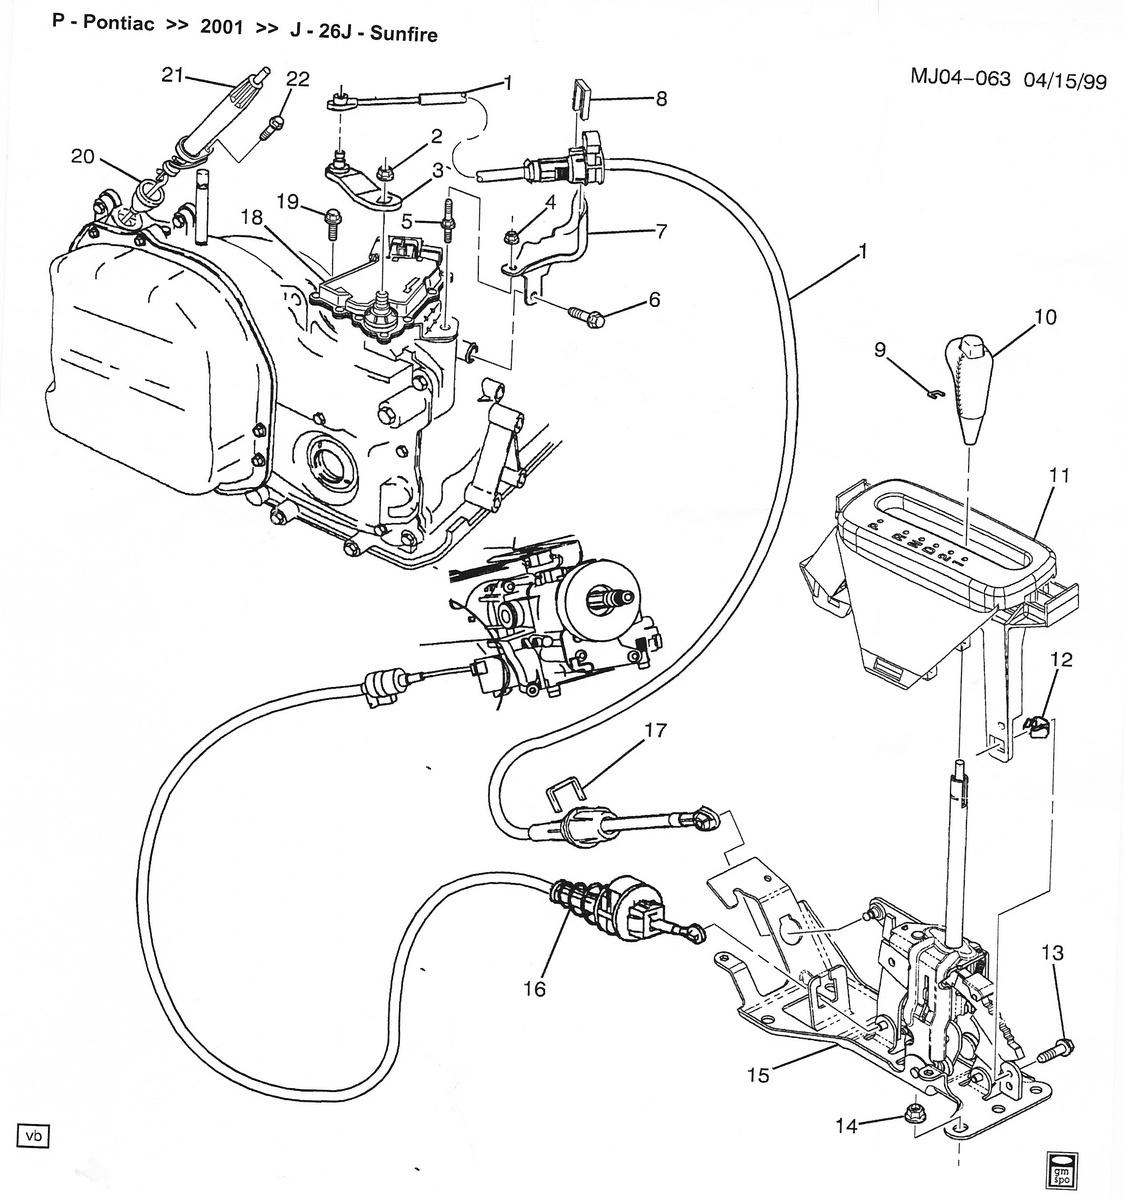 1994 S10 Transfer Case Wiring Diagram Schematic Diagrams Encoder Motor Circuit Symbols U2022 03